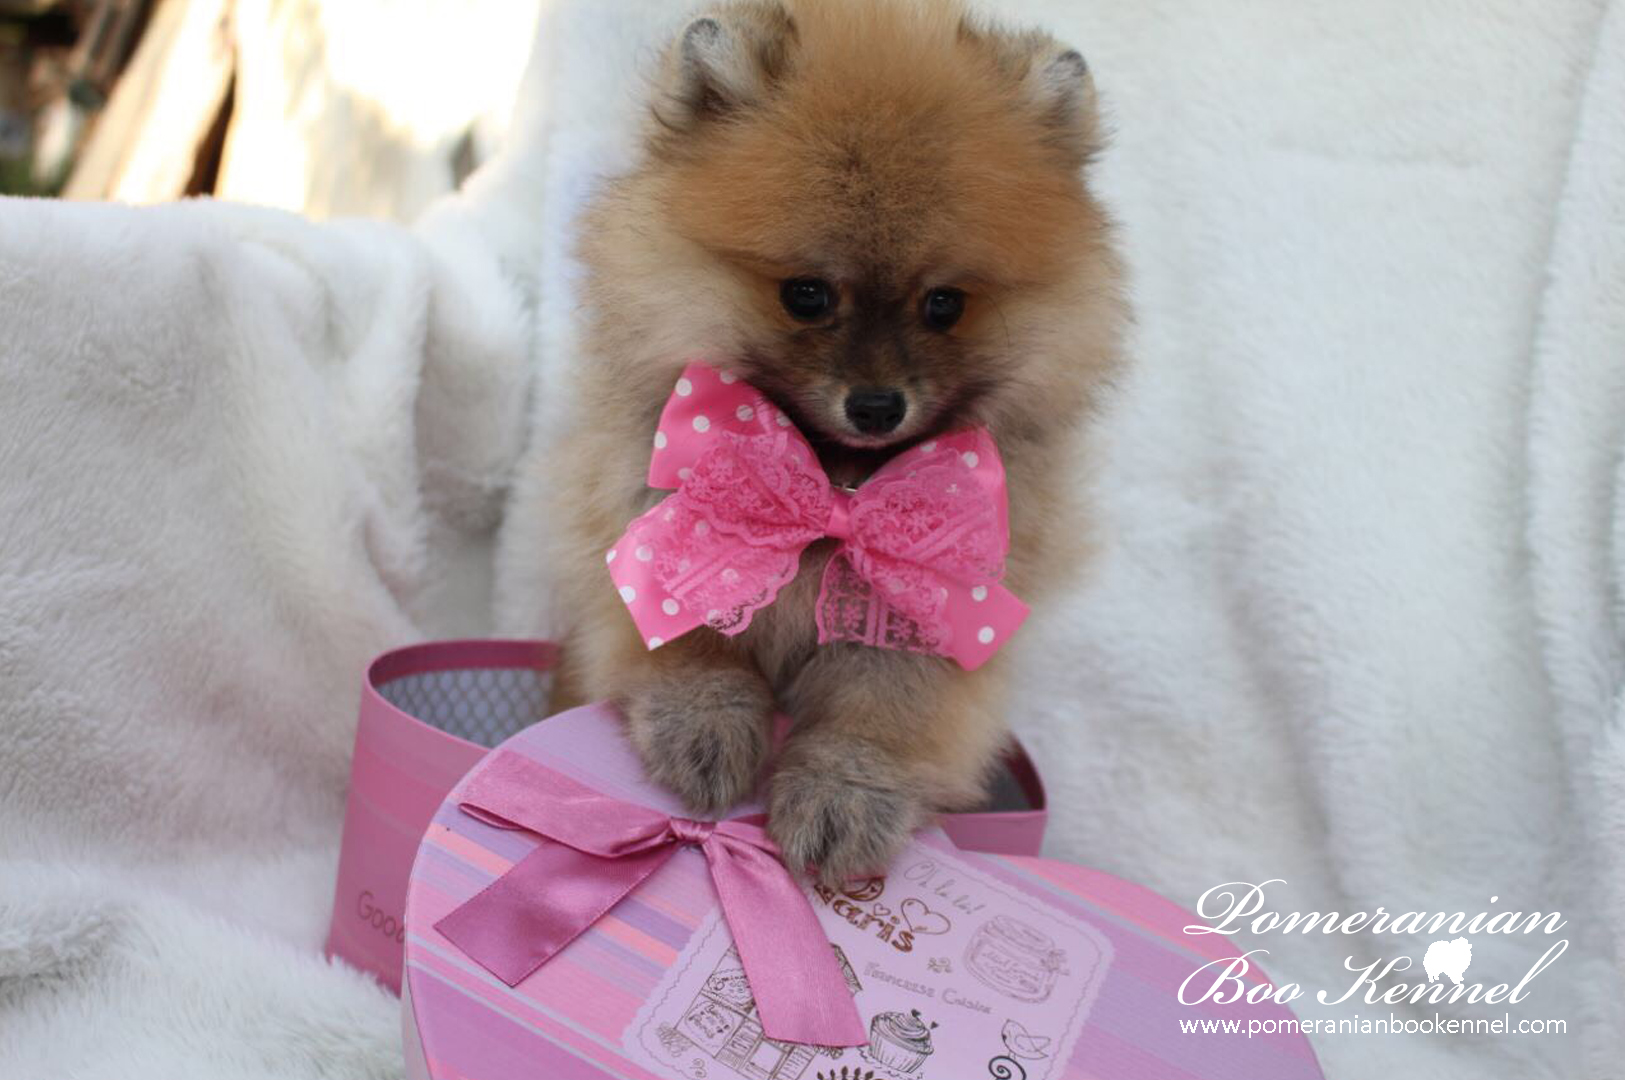 Female Puppy of Pomeranian Boo